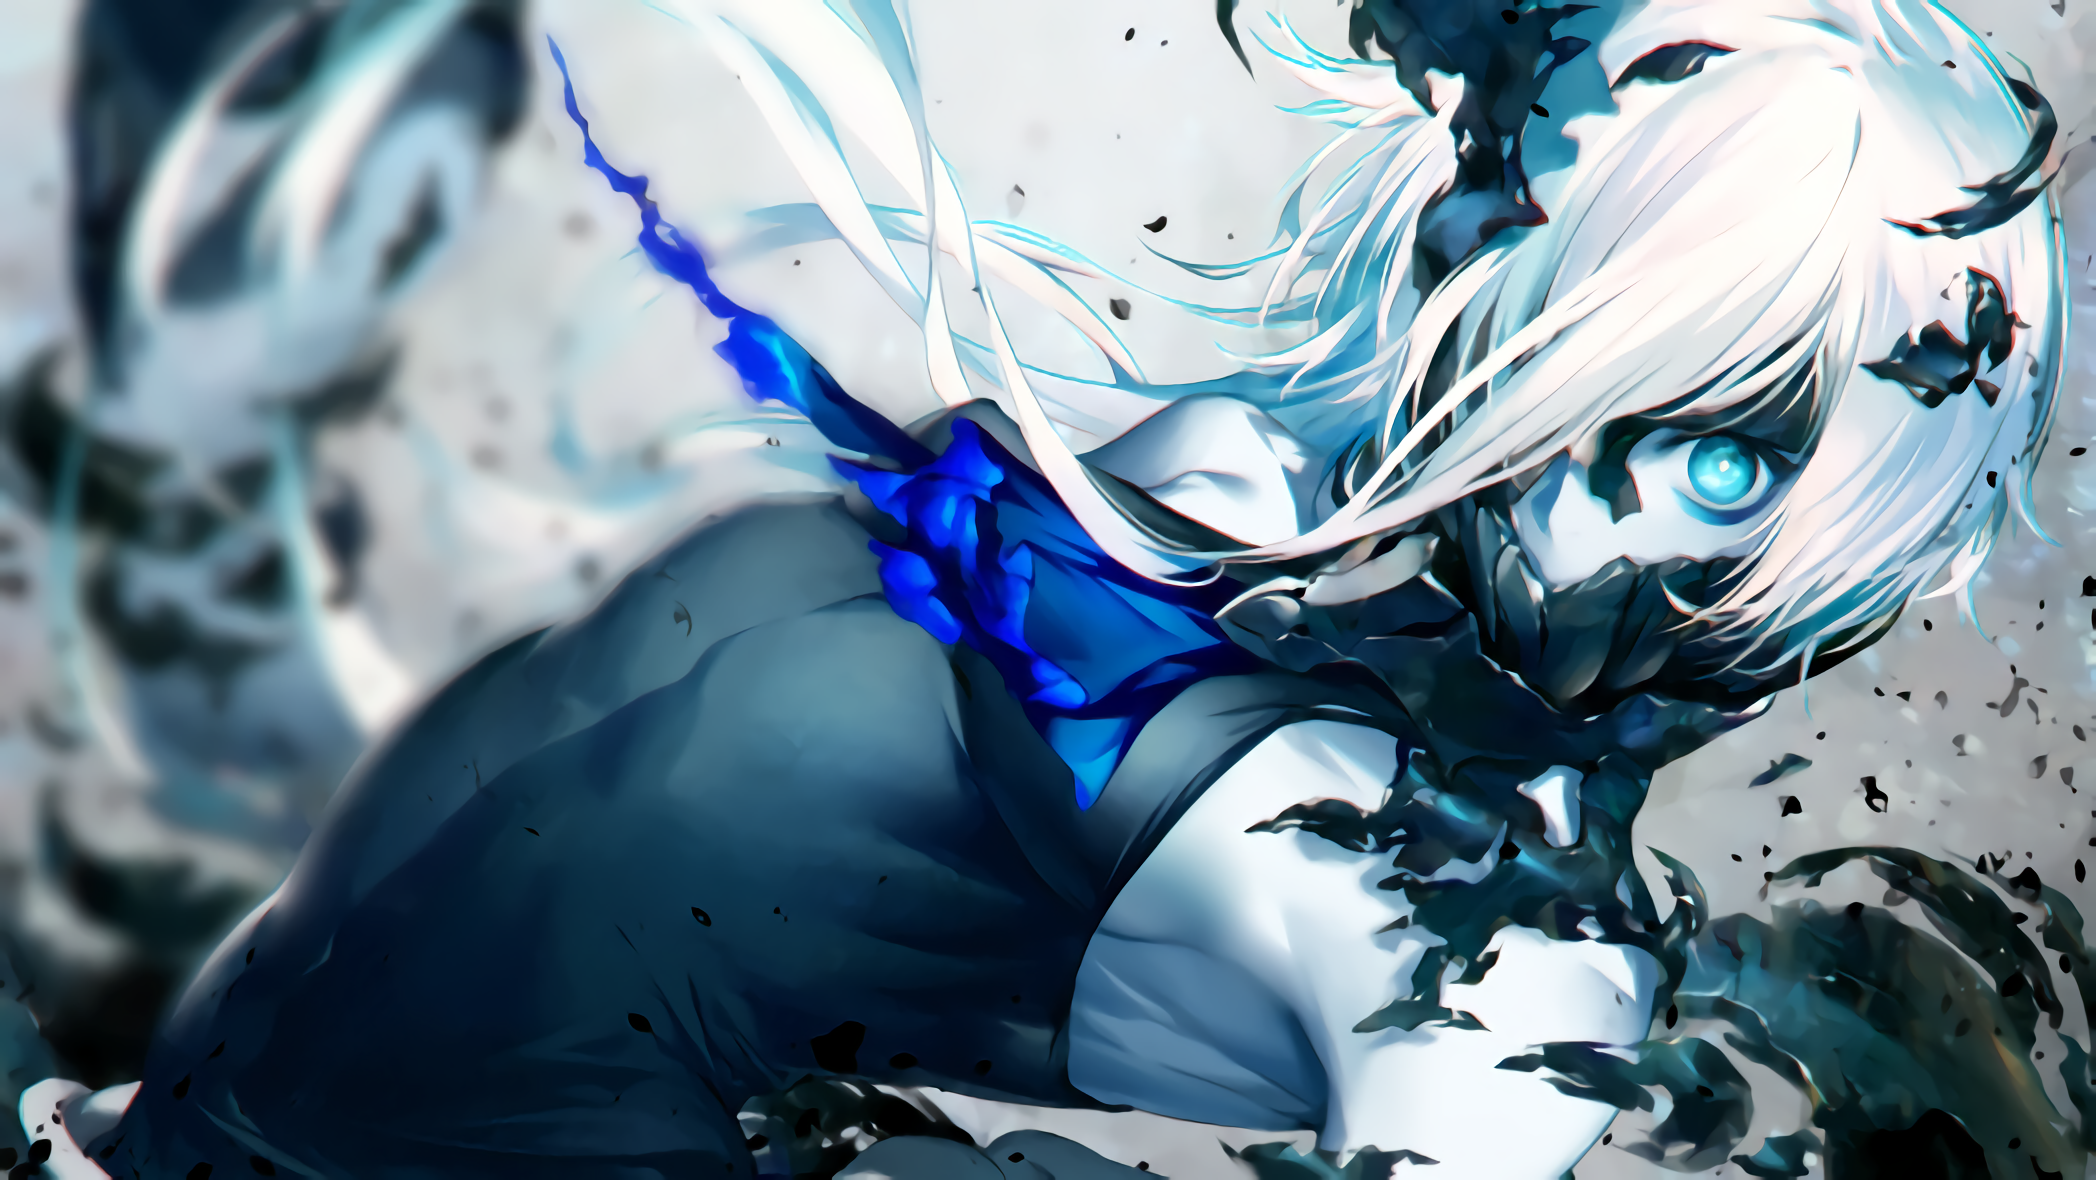 Kantai Collection Wallpapers PC Z79G86J   4USkY 2096x1180